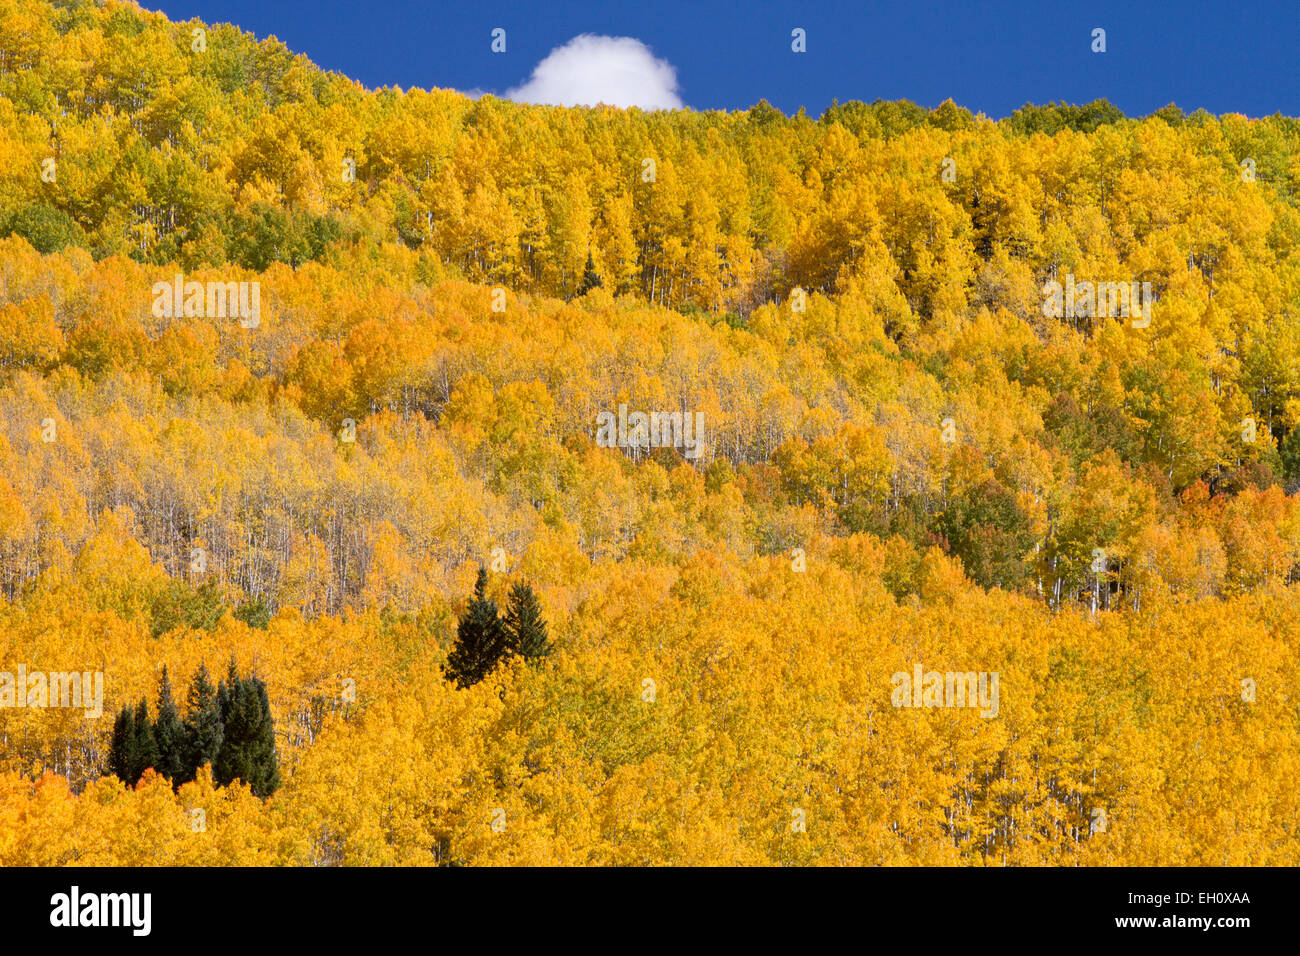 Fall colors in Gunnison National Forest, Colorado - Stock Image